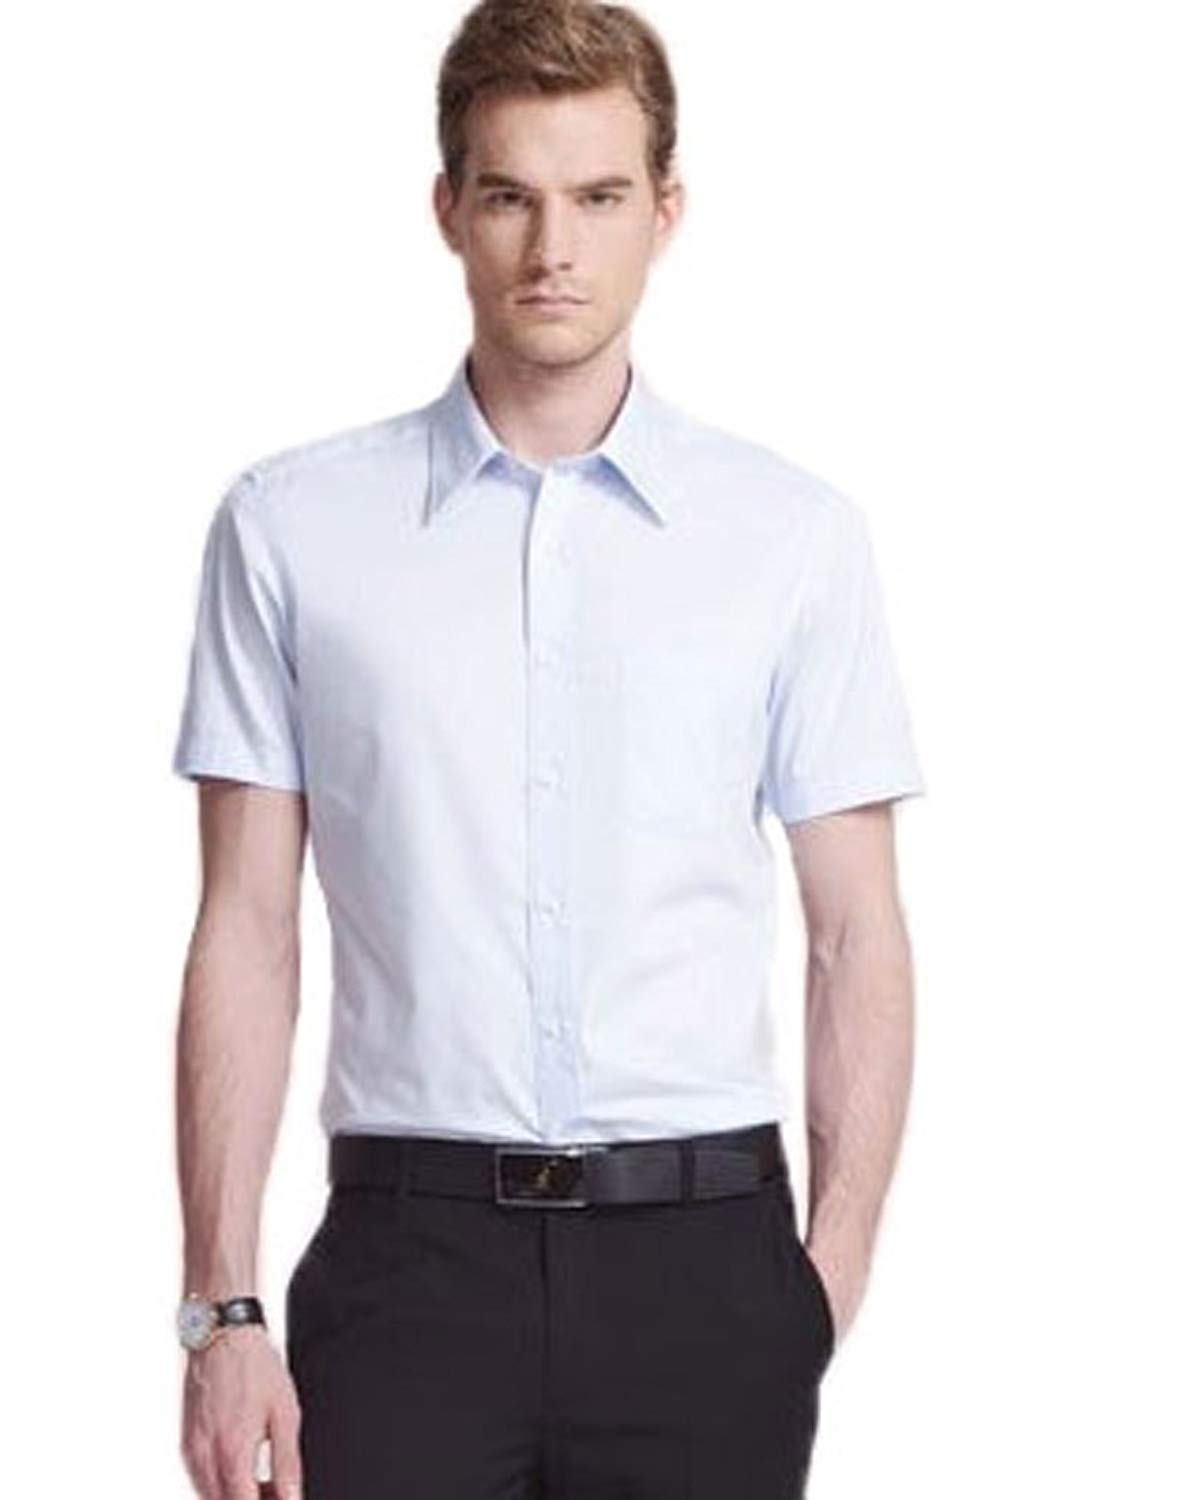 d326fb59eeb Get Quotations · Soojun Mens Short Sleeve Button Up Collared Dress Shirts